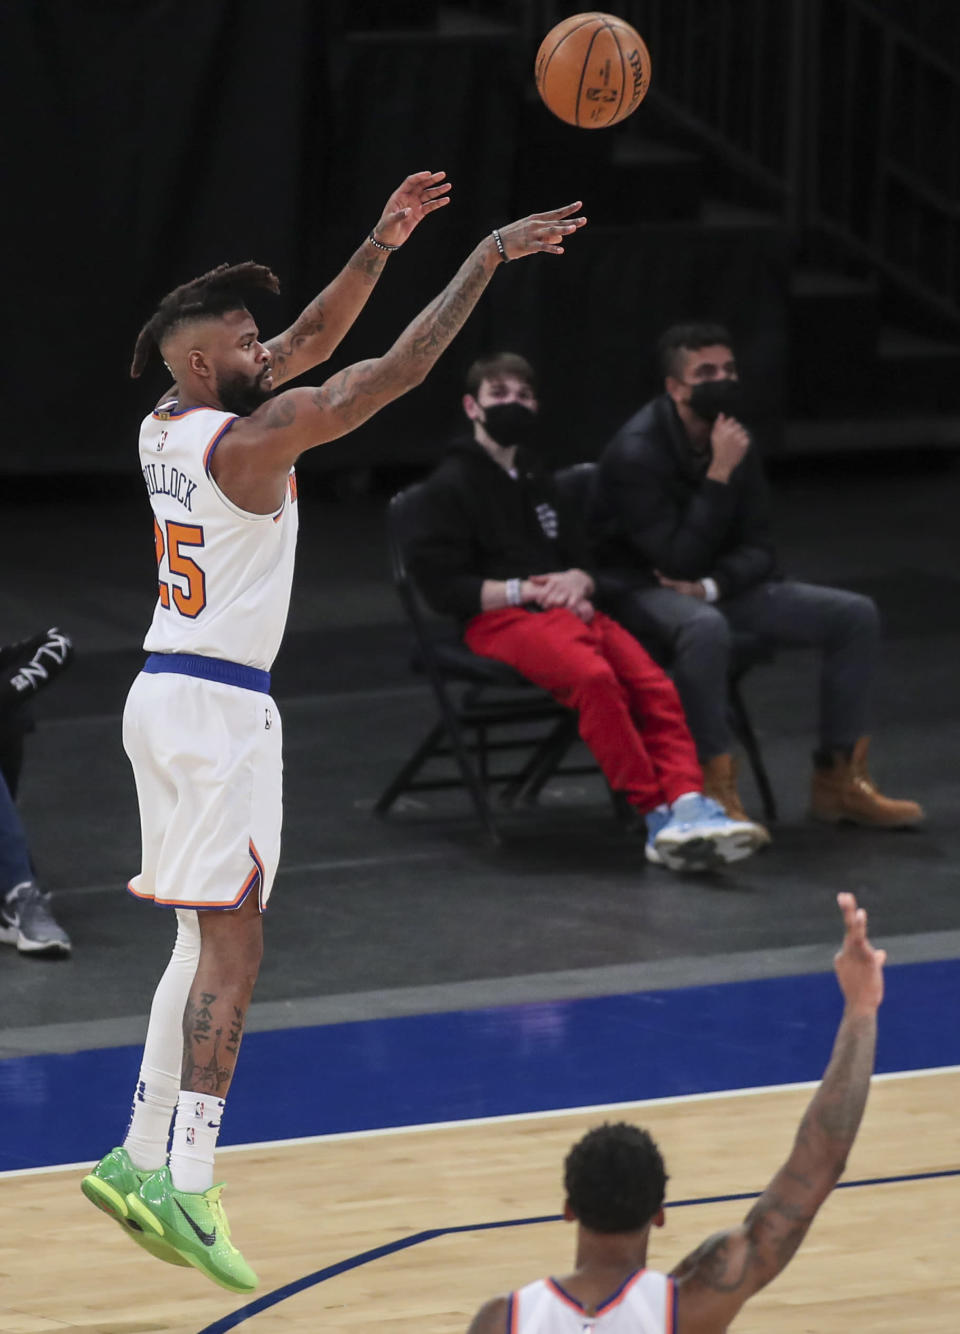 New York Knicks forward Reggie Bullock (25) takes a 3-point shot during the second quarter against the Detroit Pistons in an NBA basketball game Thursday, March 4, 2021, in New York. (Wendell Cruz/Pool Photo via AP)